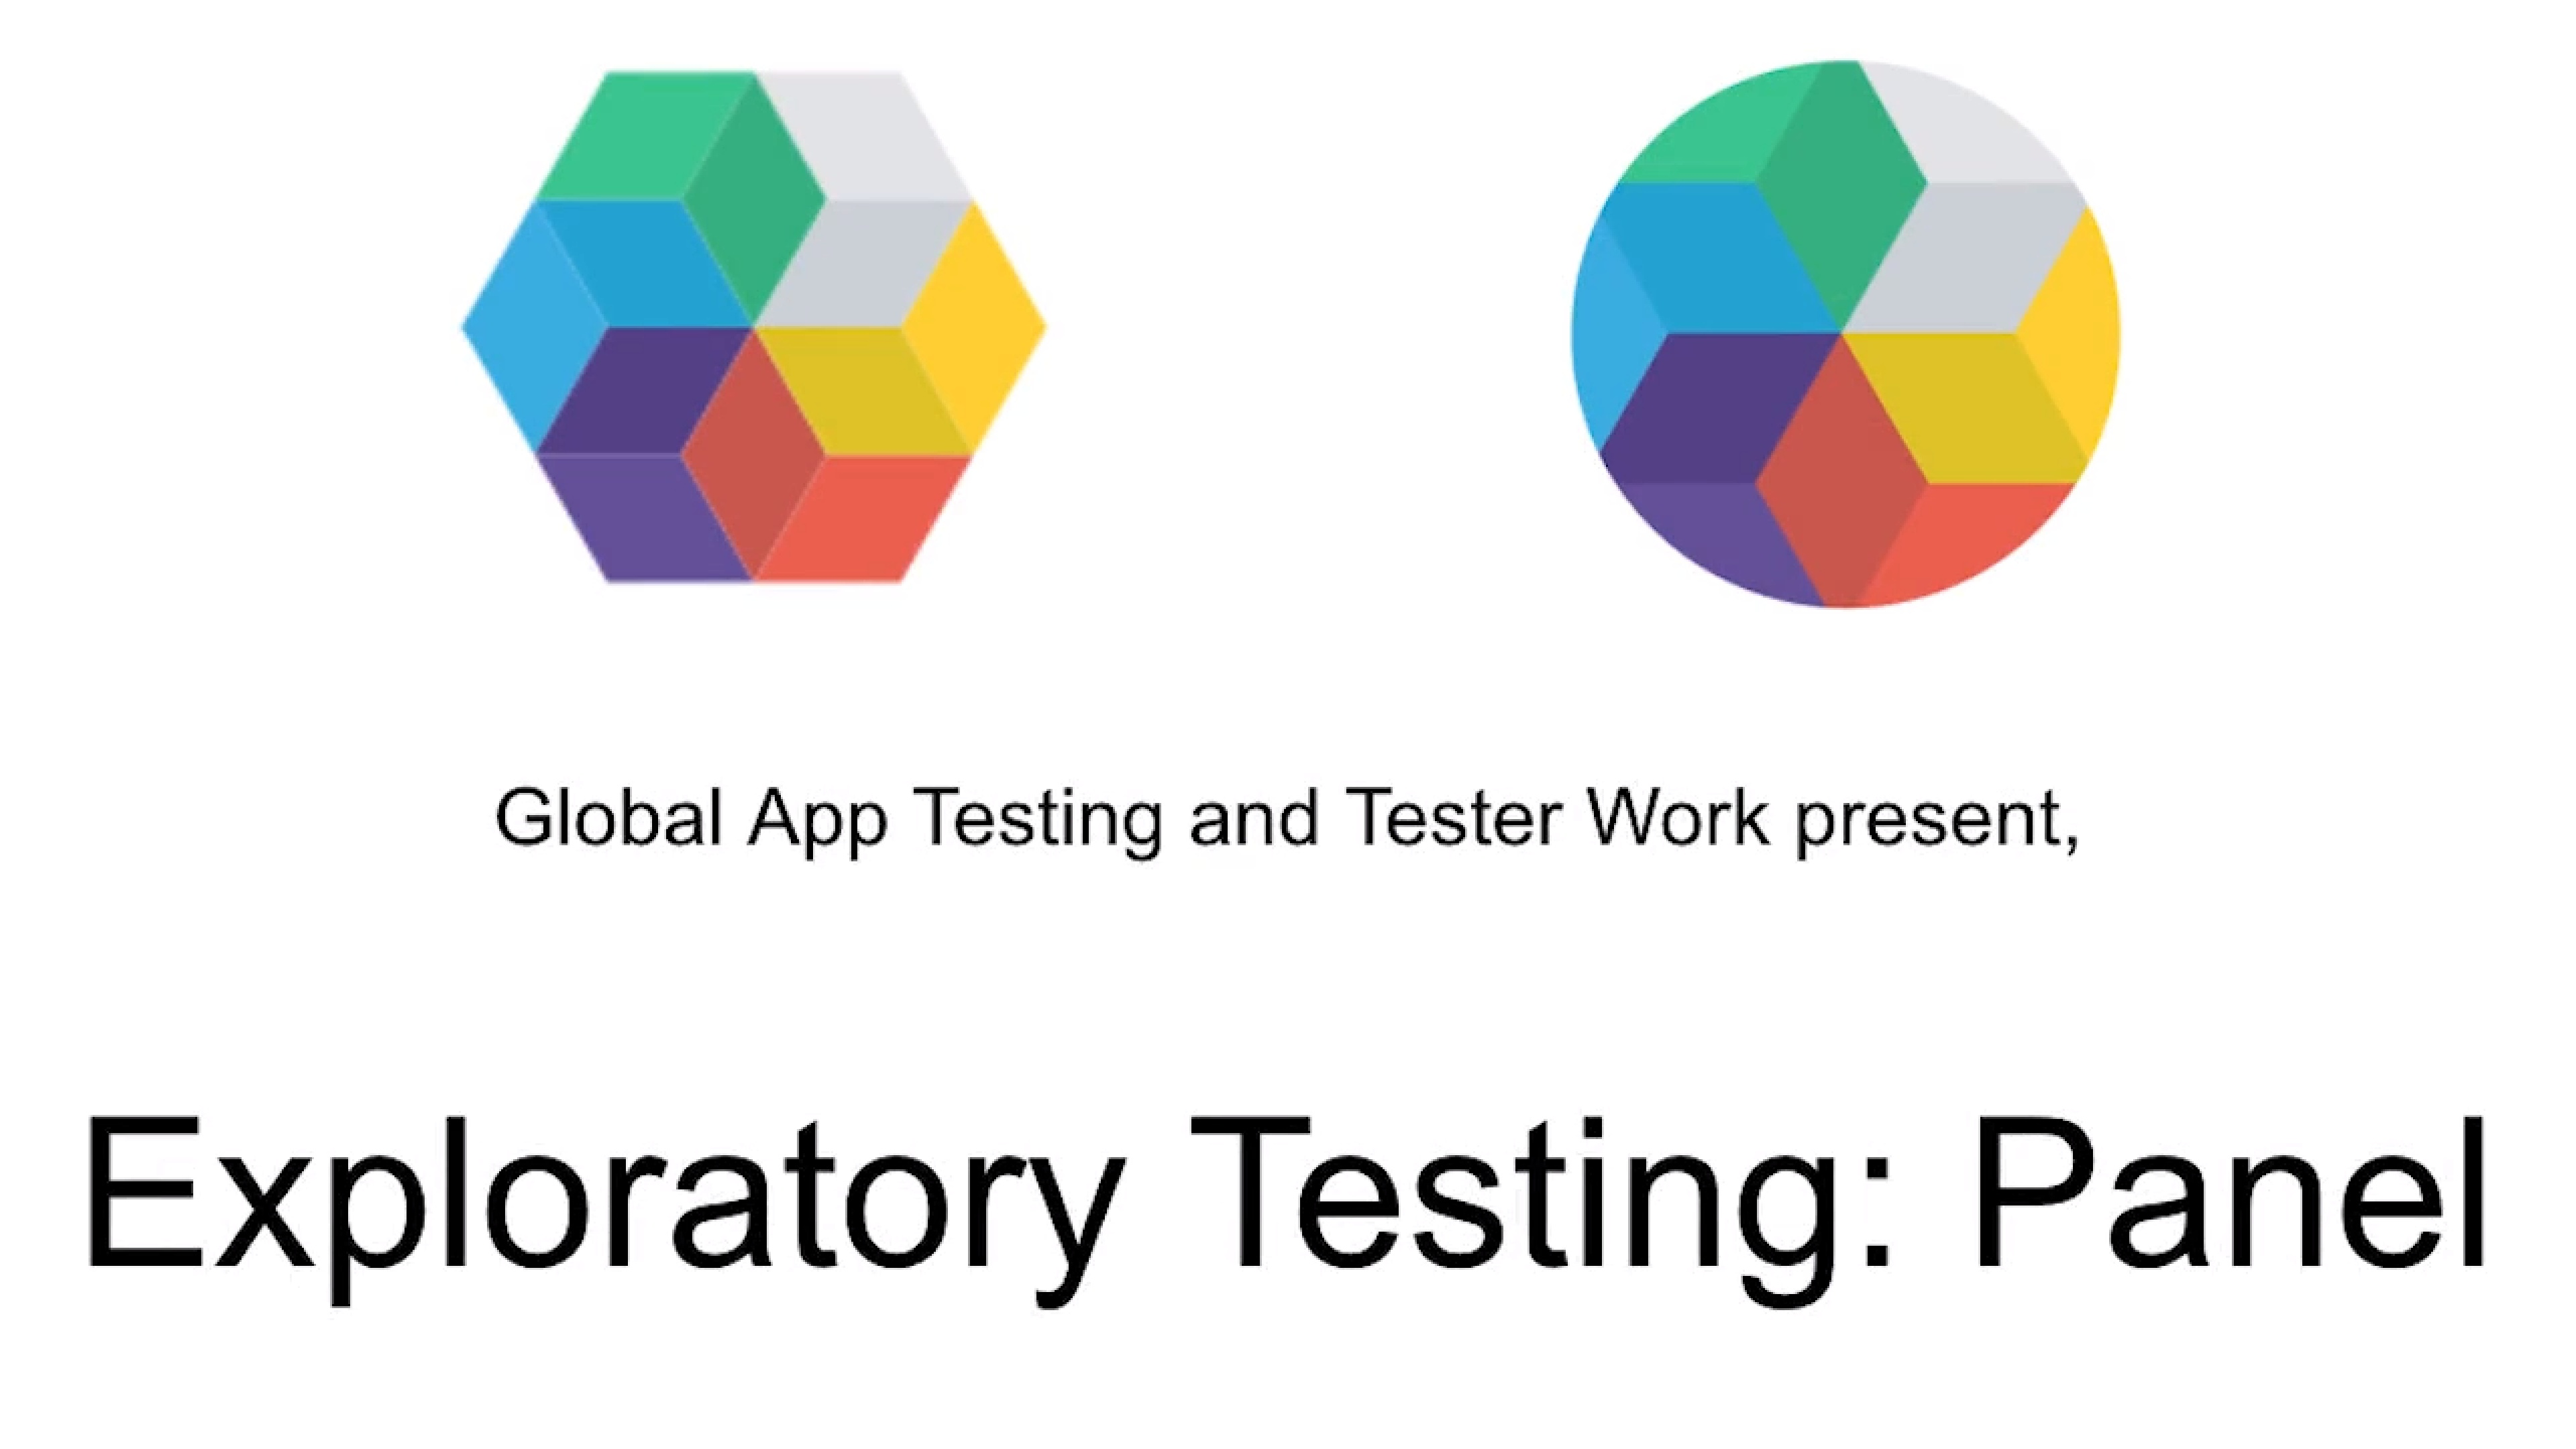 Discussion: Global App Testing Testers Talk All Things Exploratory Testing